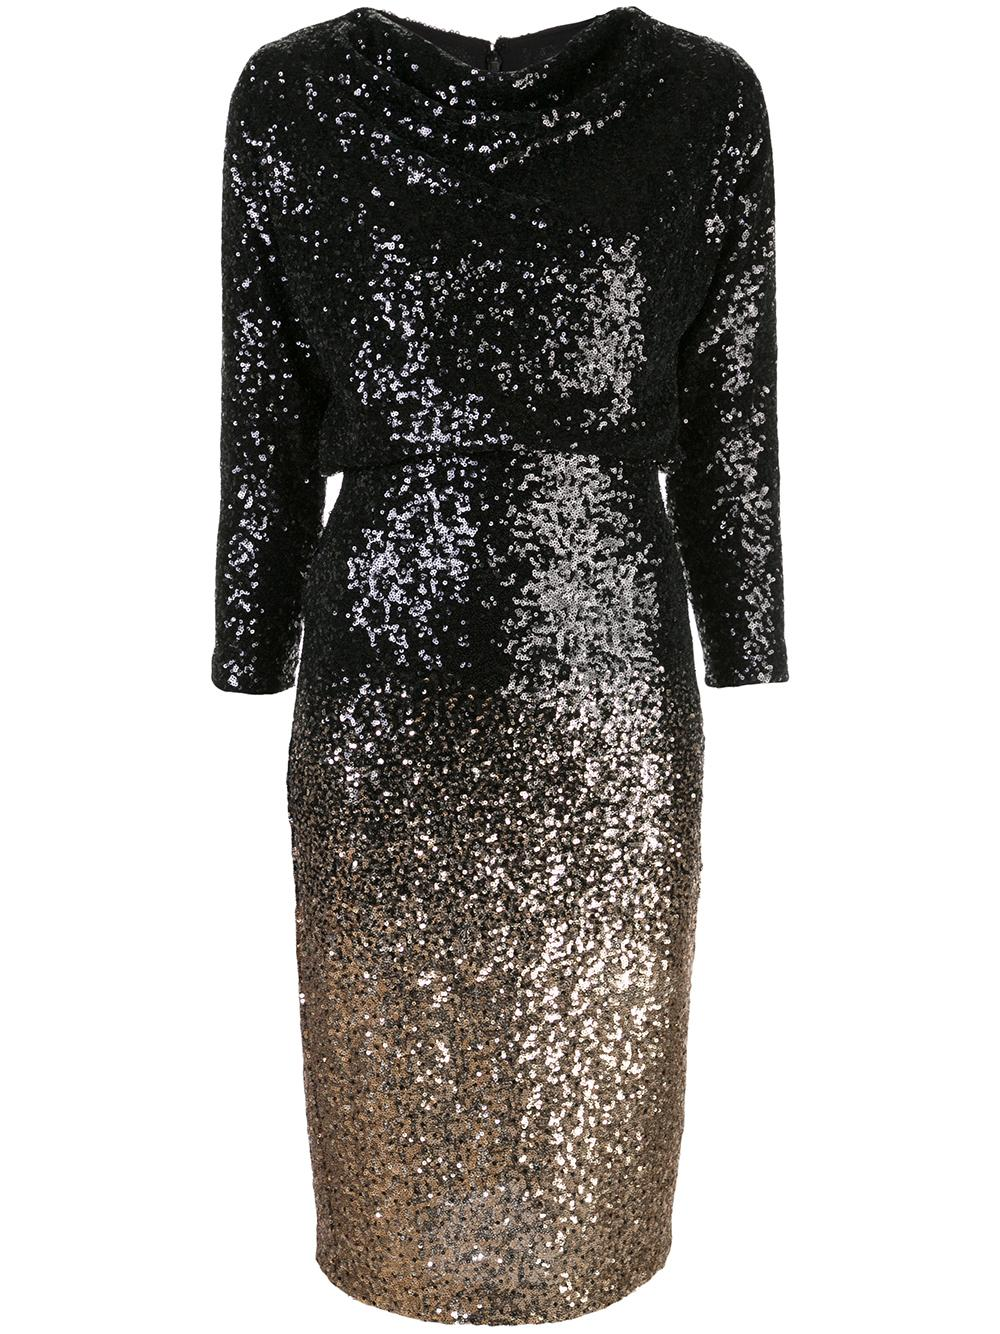 Ombre Sequin Cocktail Dress